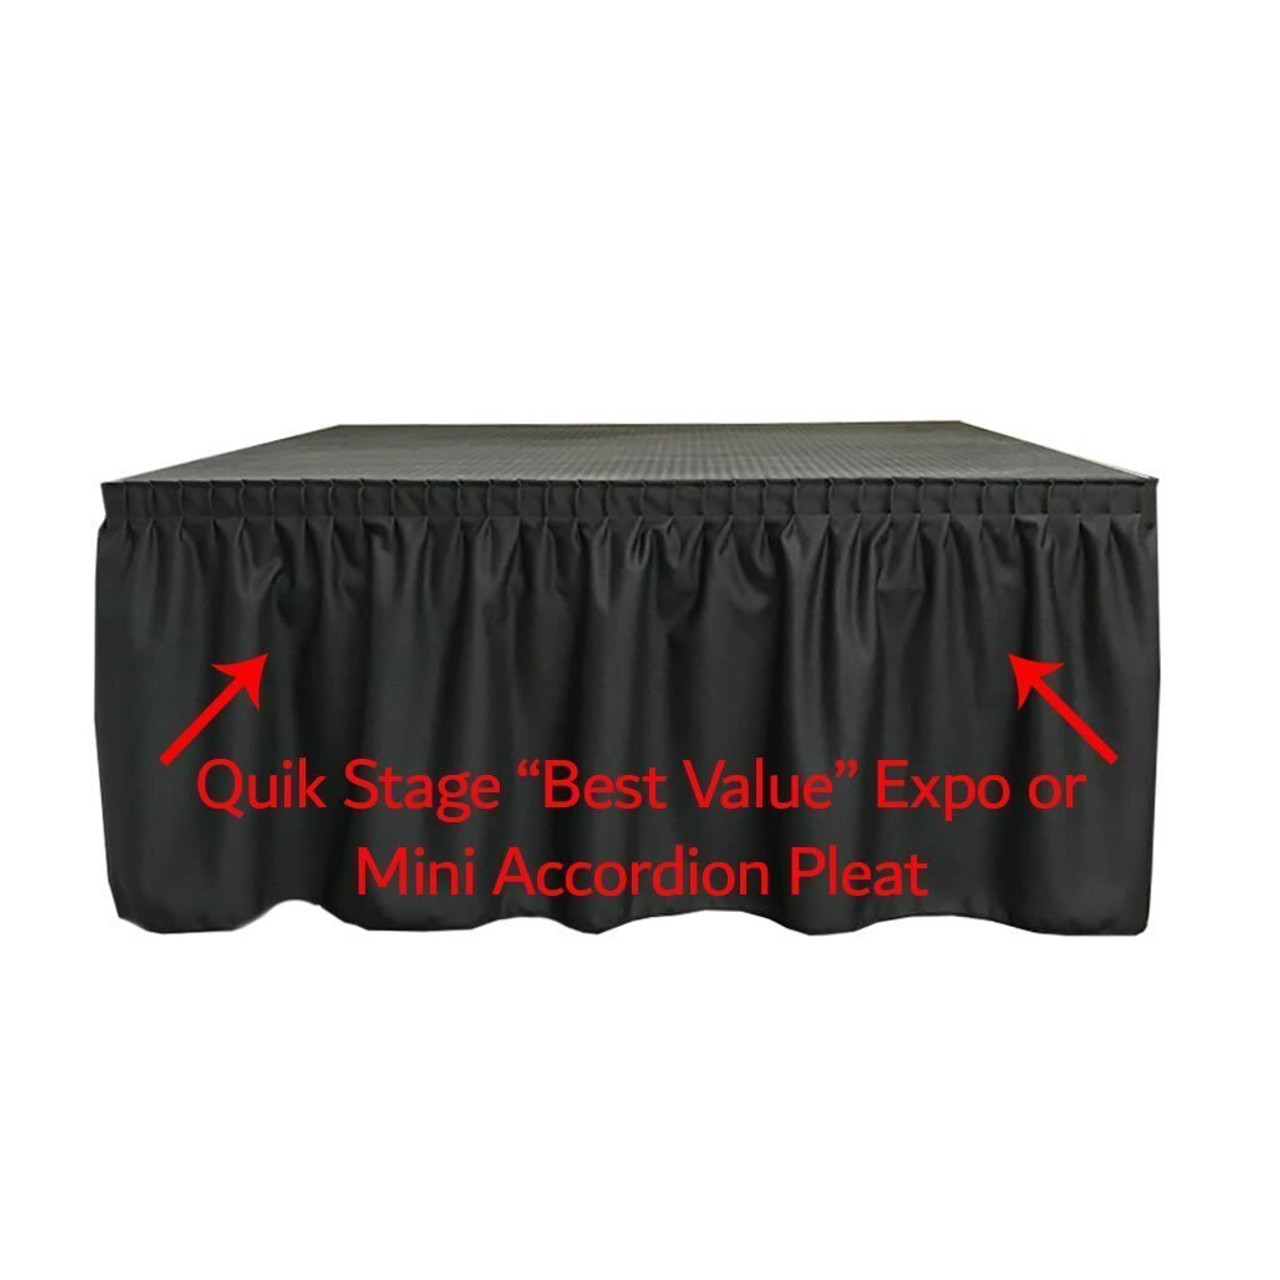 High Quality Quik Stage 4' x 16' High Portable Stage Package with Black Polyvinyl Non-Skid Surface. Additional Heights and Surfaces Available. - Best Value Expo Pleat Stage Skirting.